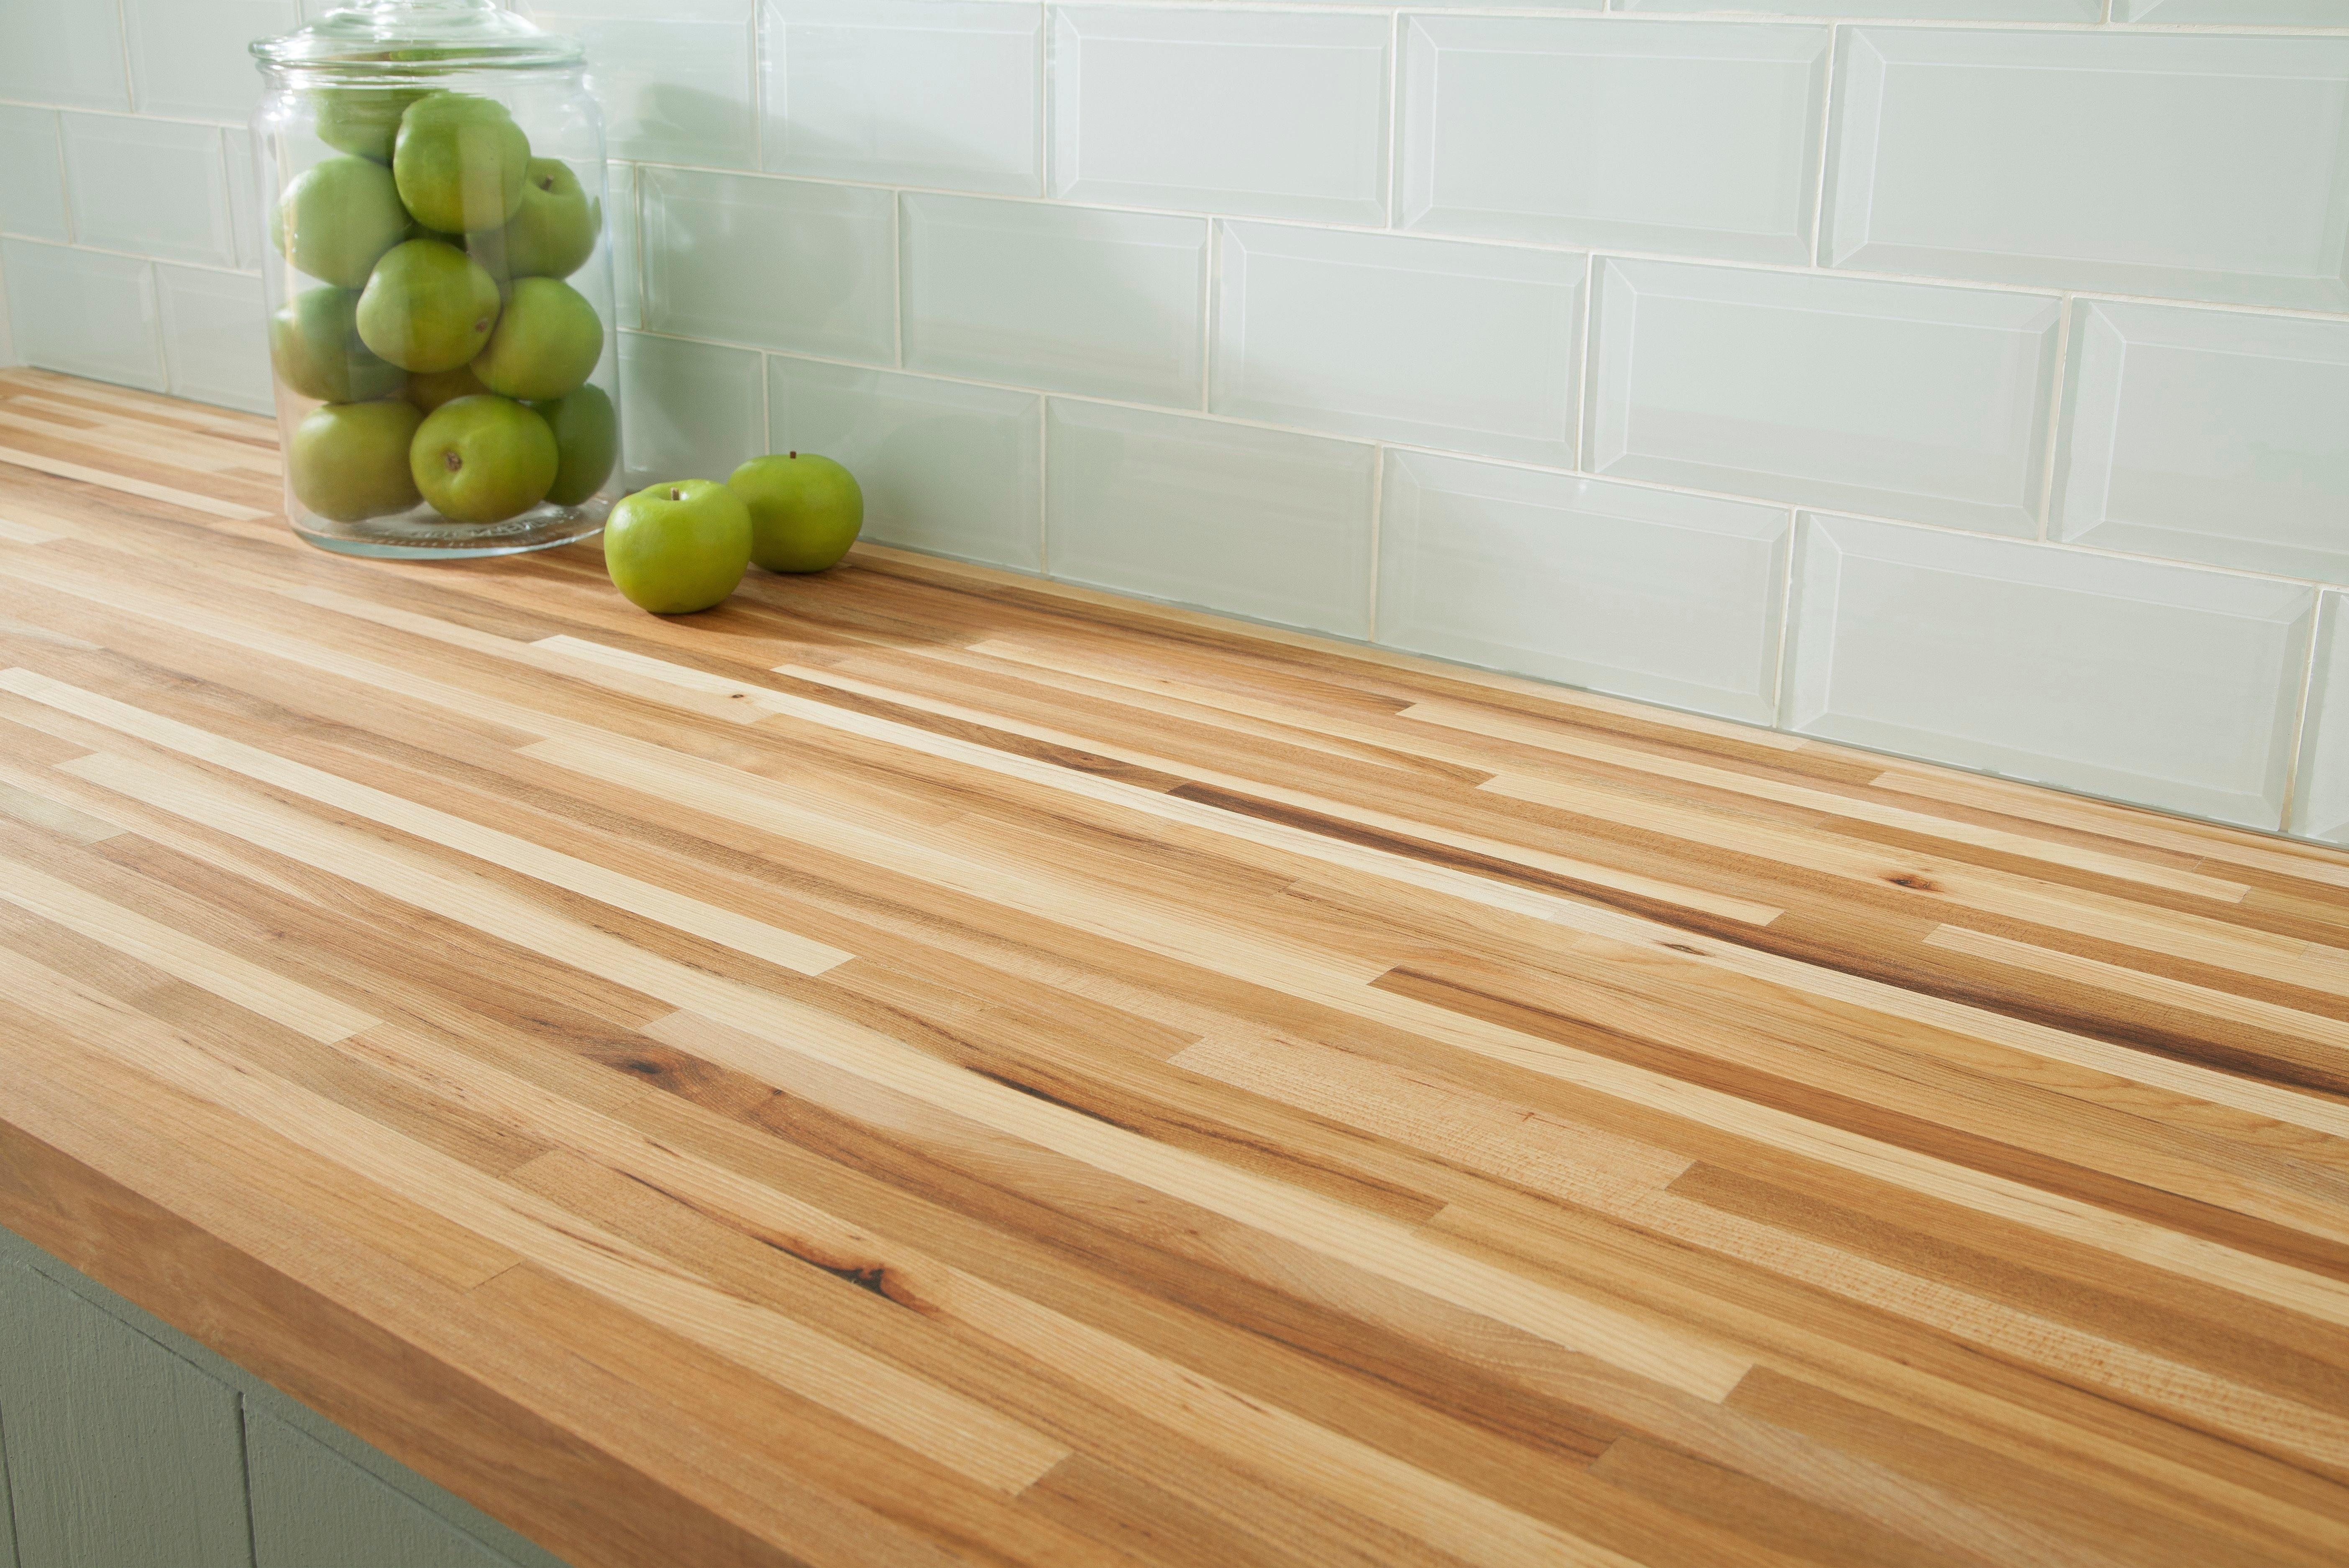 American Hickory Butcher Block Countertop 8ft 96in X 25in 100110113 Floor And Decor